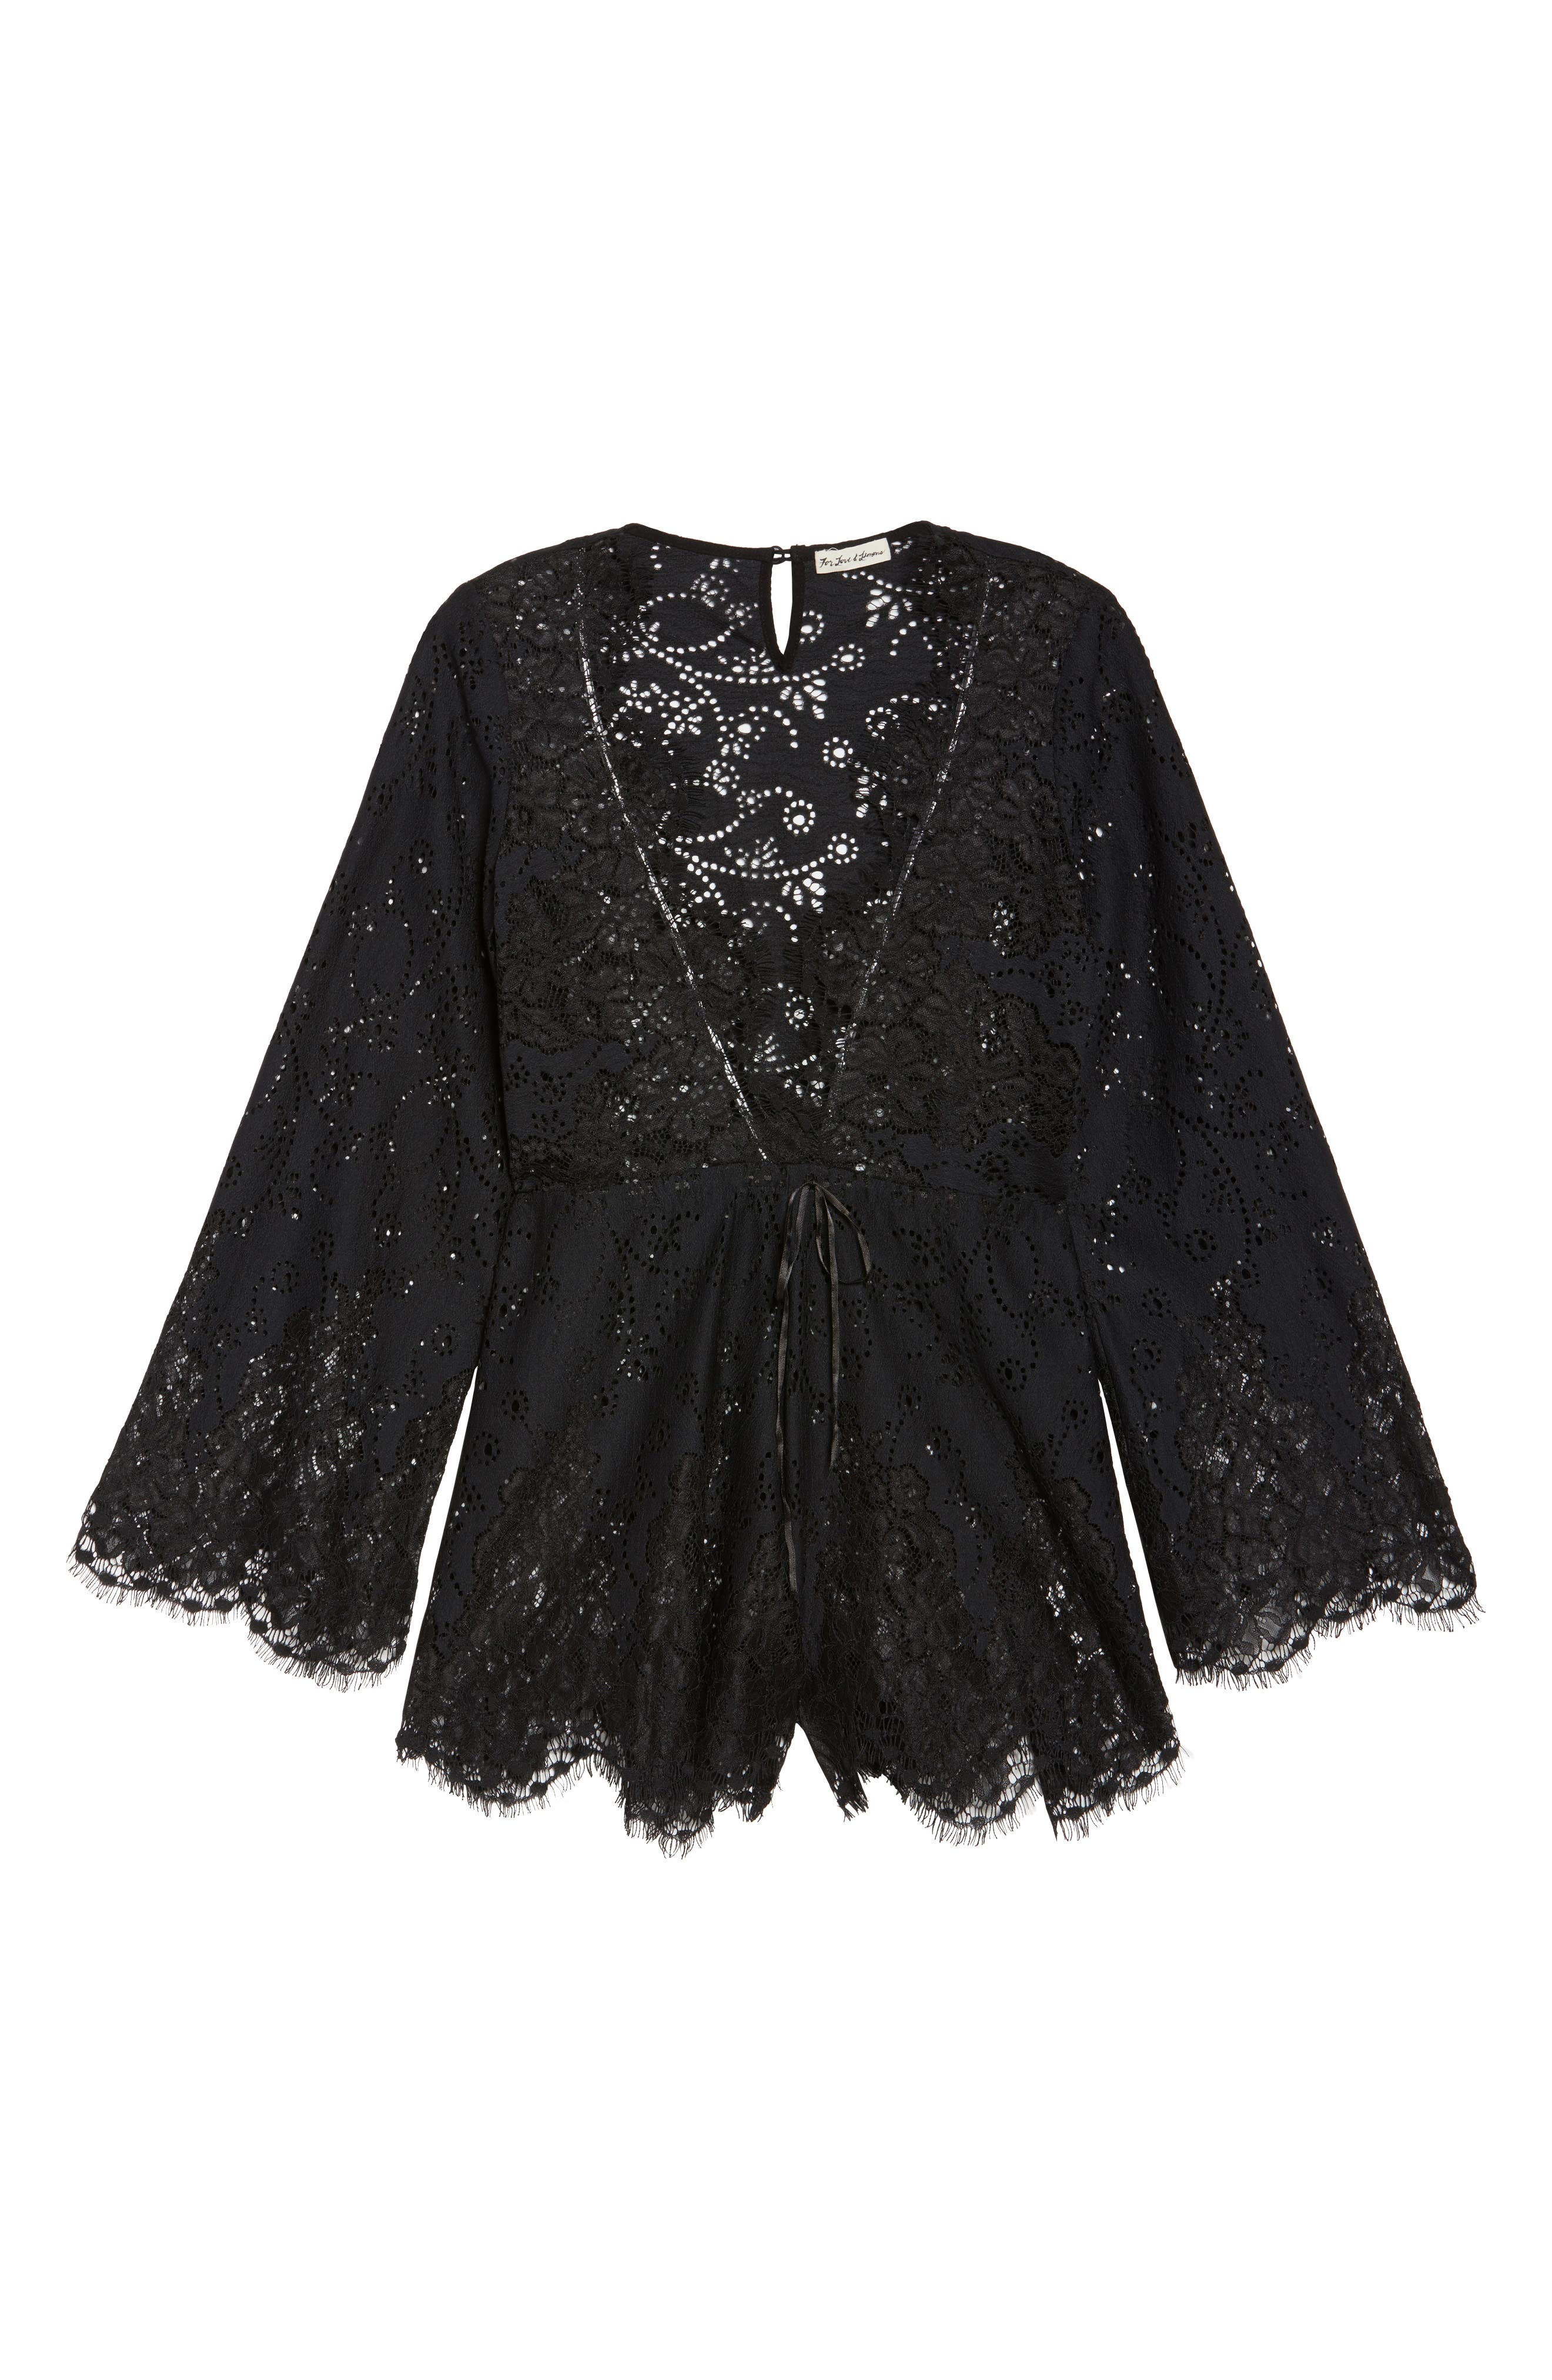 Olympia Lace Cover-Up Romper,                             Alternate thumbnail 6, color,                             001